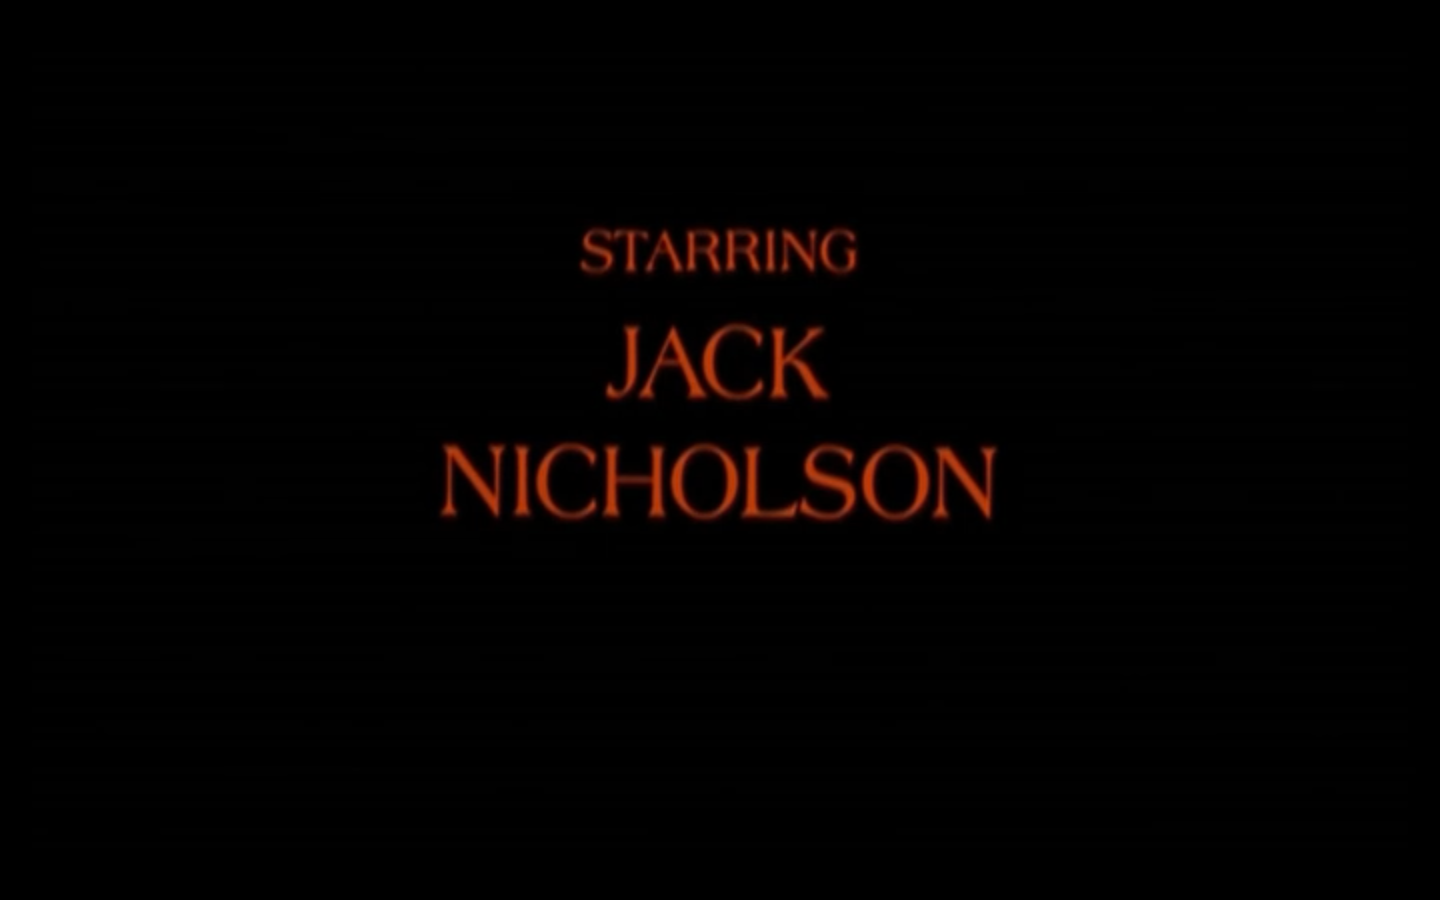 jack nicholson carnal knowledge.png